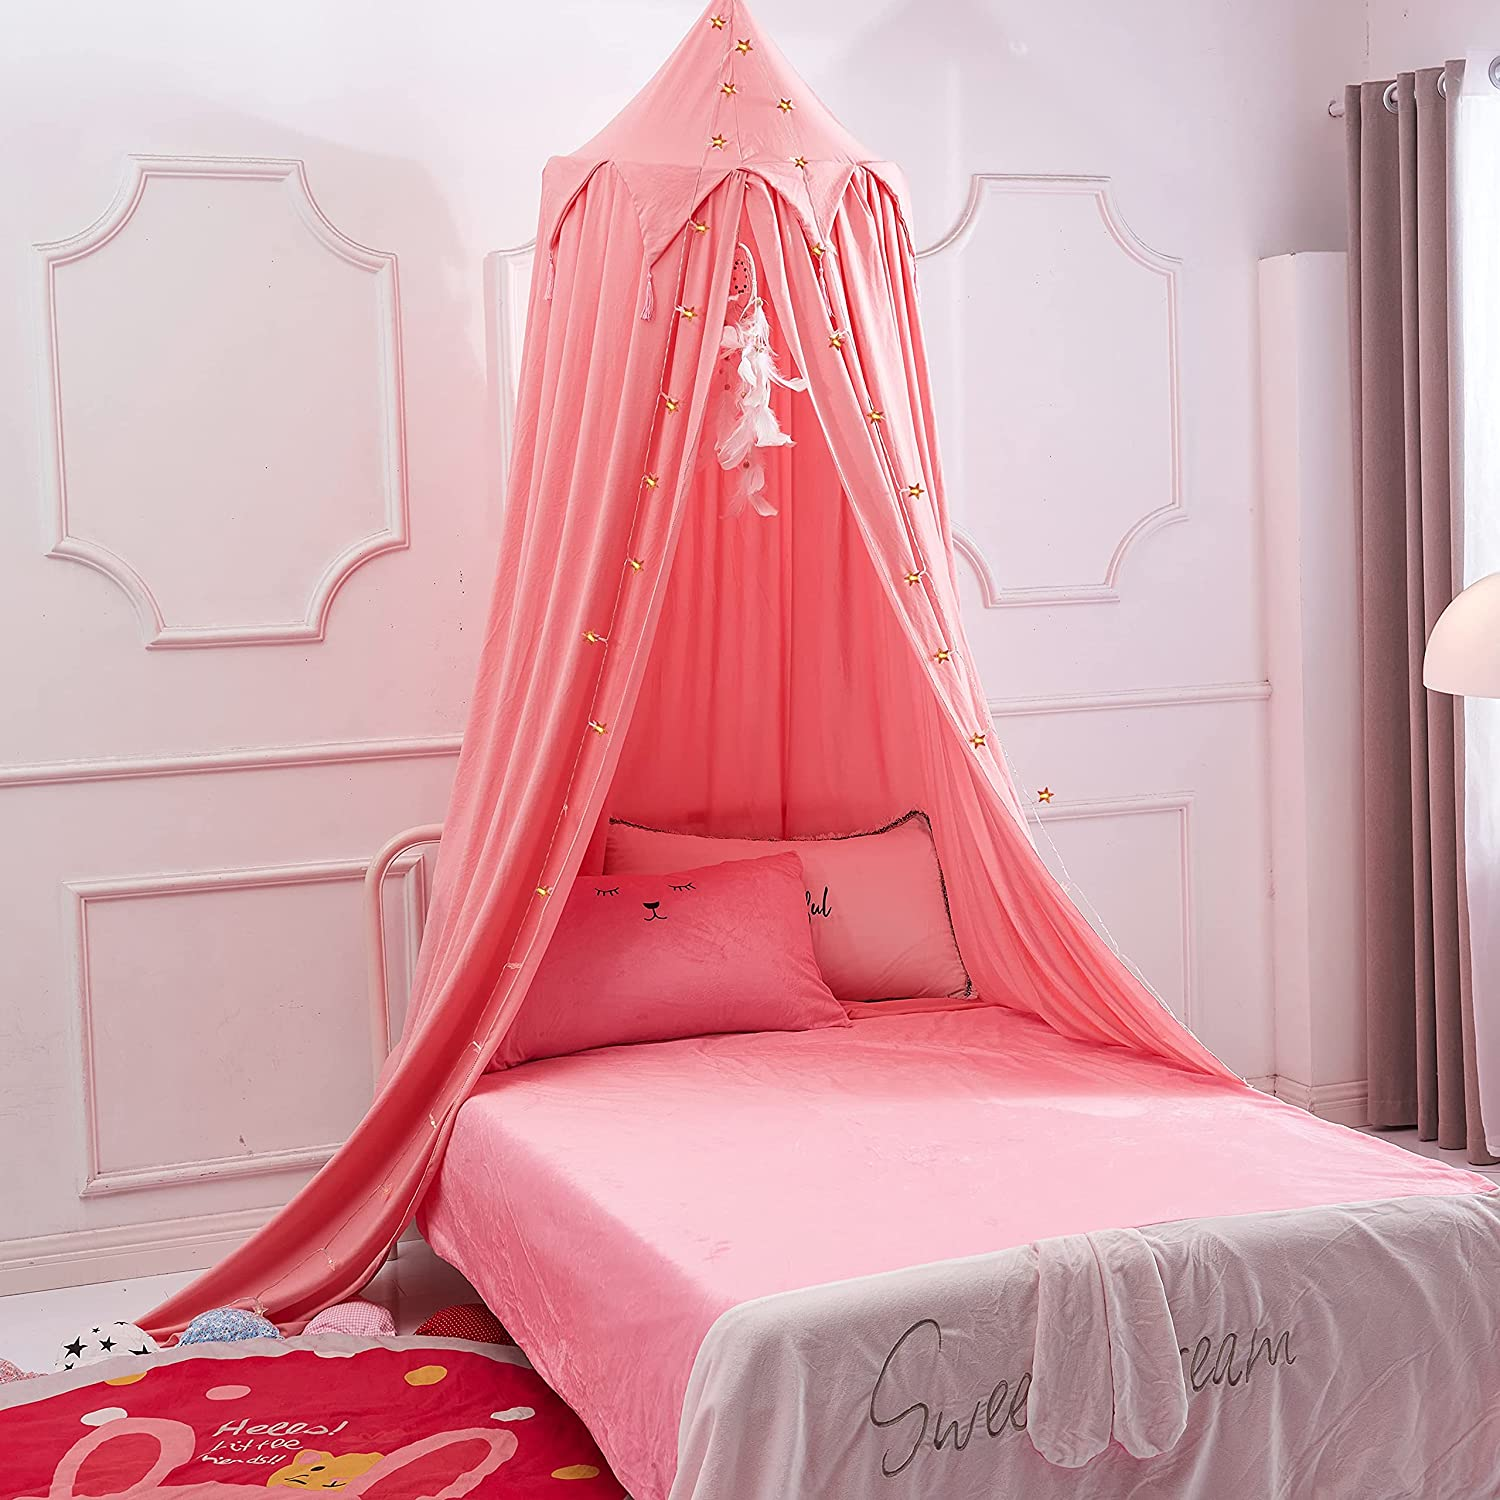 Akiky Princess Bed Canopy for Kids Bed, Playing Tent Canopy with Dream Catcher for Girls Room Decoration Princess Castle, Children Reading Nook Canopies in Home Decor(Pink)